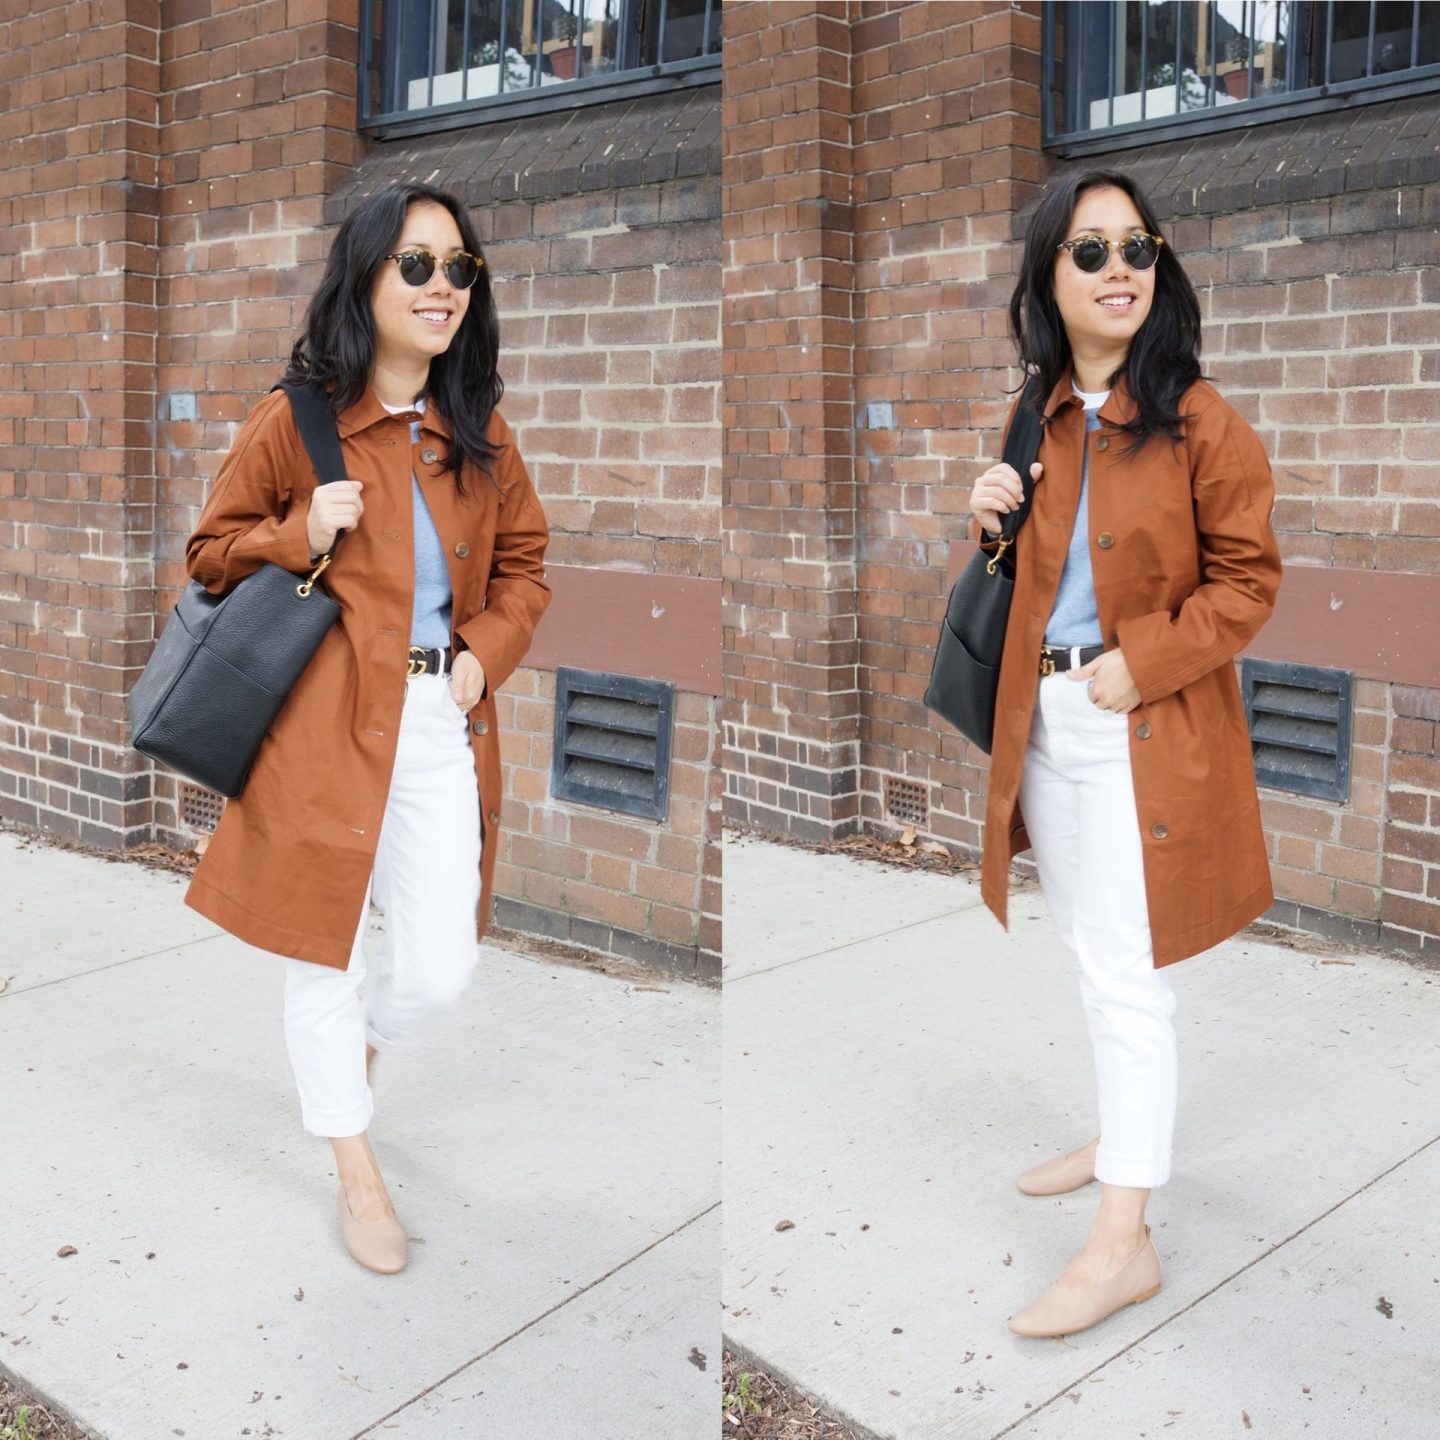 everlane mac coat in blog post about everlane jackets and outerwear for transitional seasons